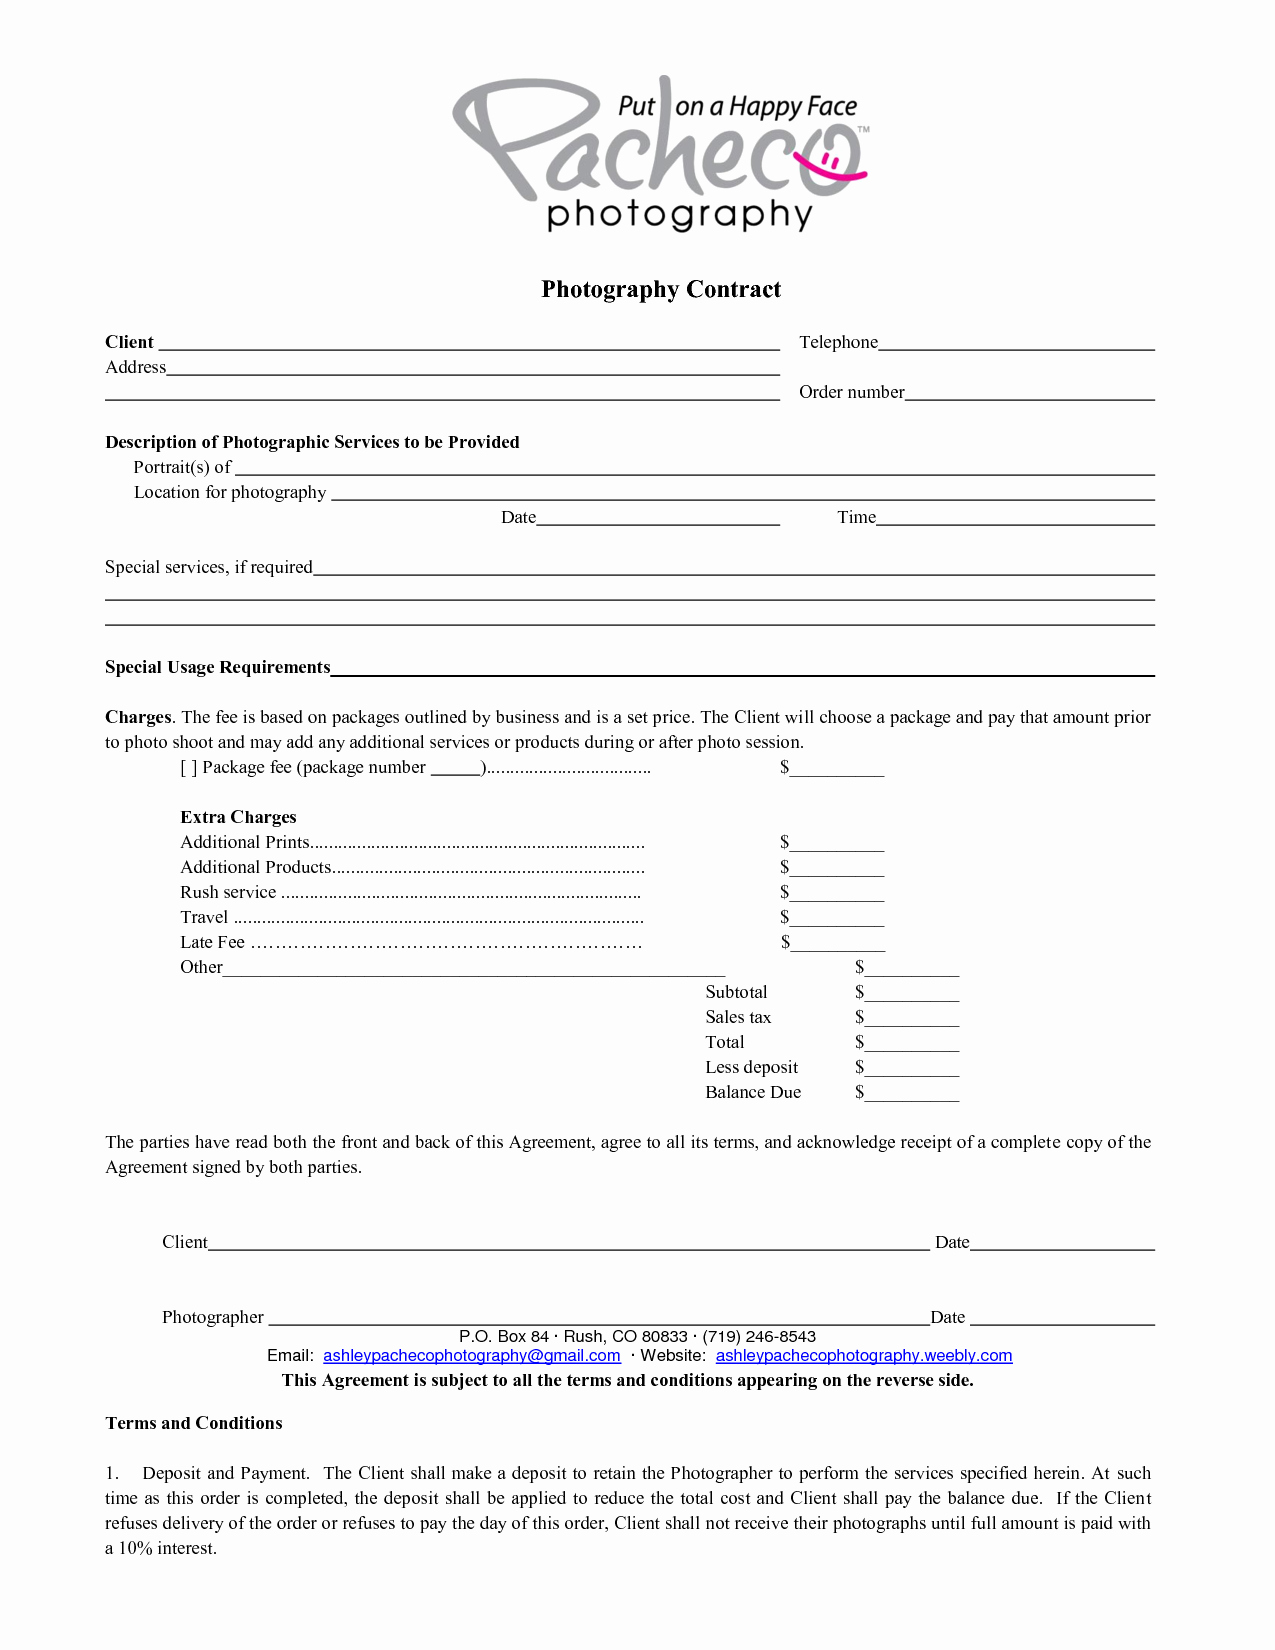 Free Wedding Photography Contract Template Fresh Graphy Contract Template Beepmunk